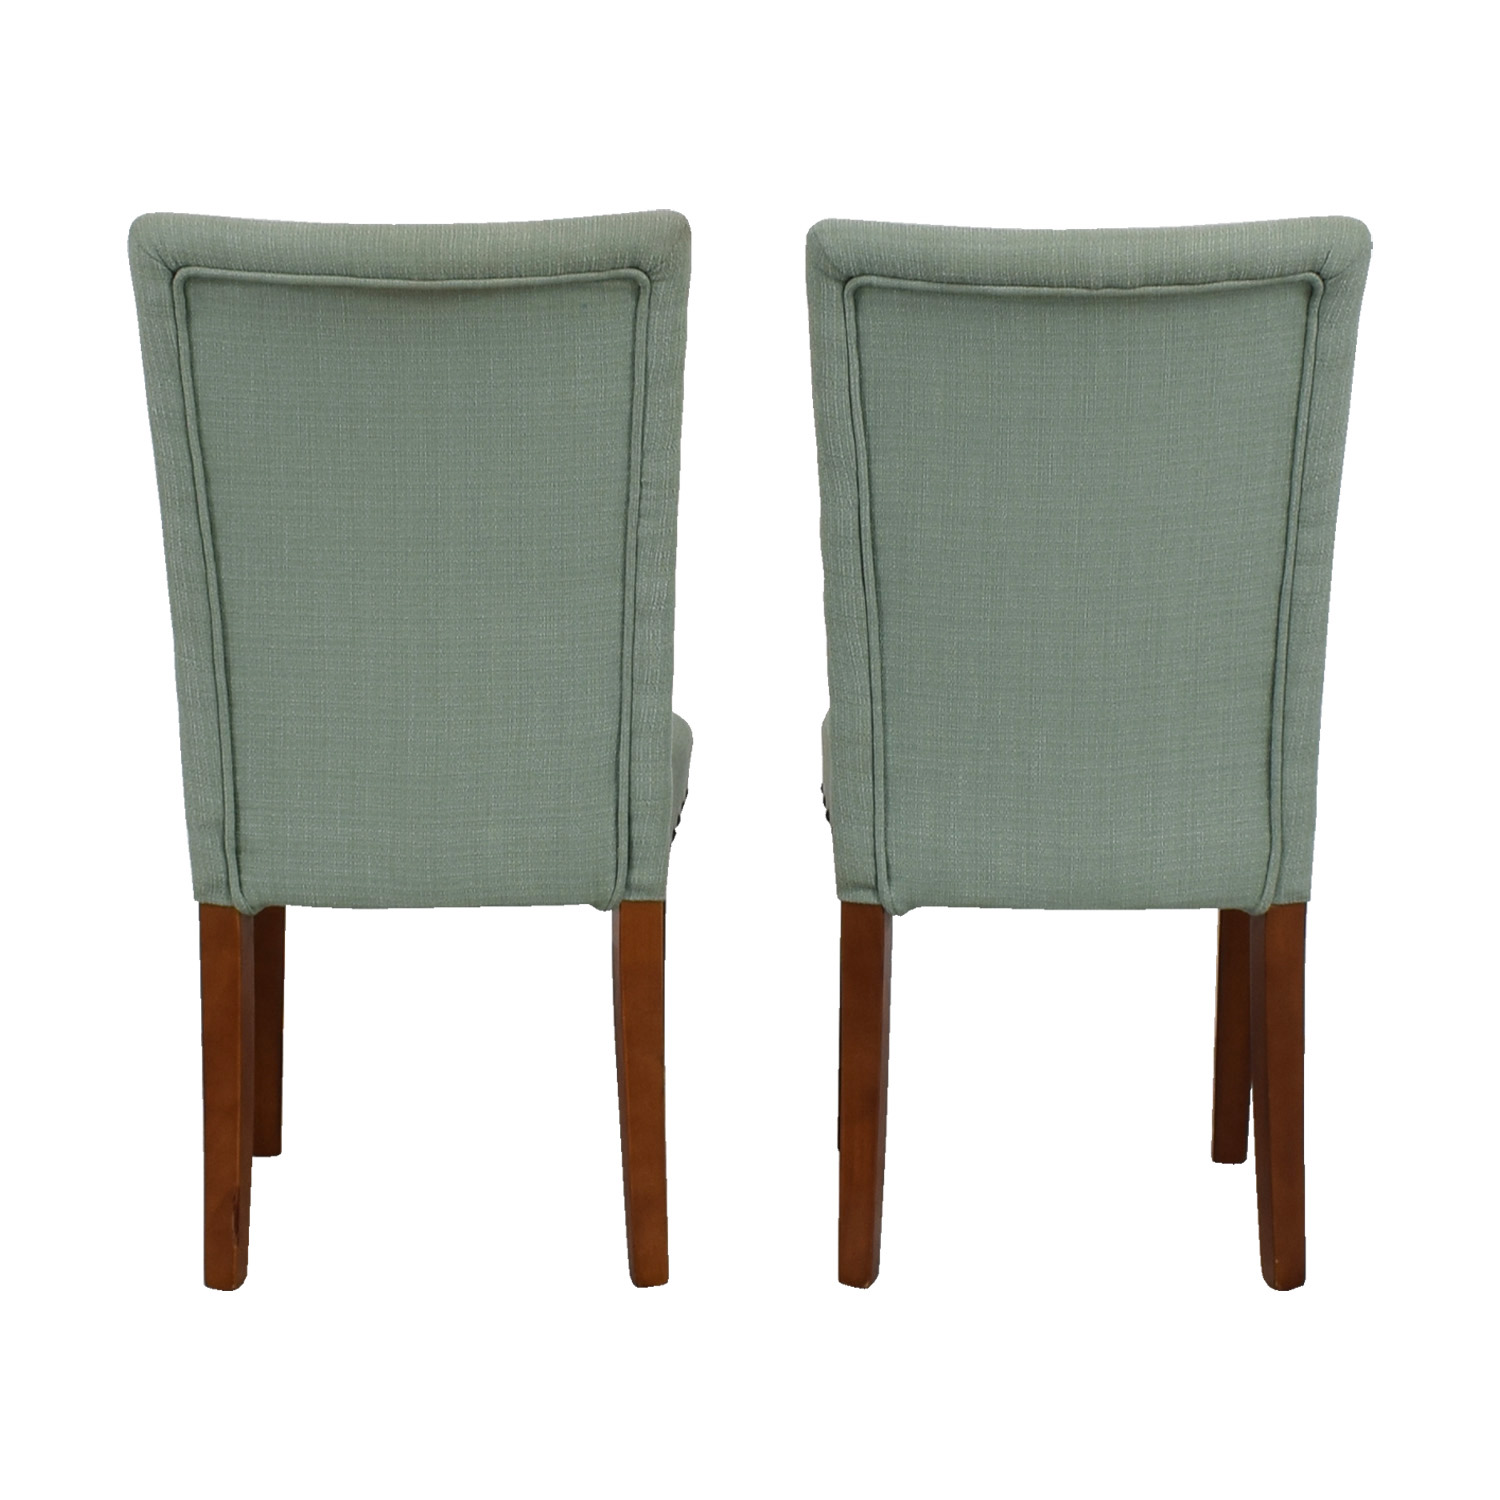 buy Seafoam Upholstered Nailhead Chairs